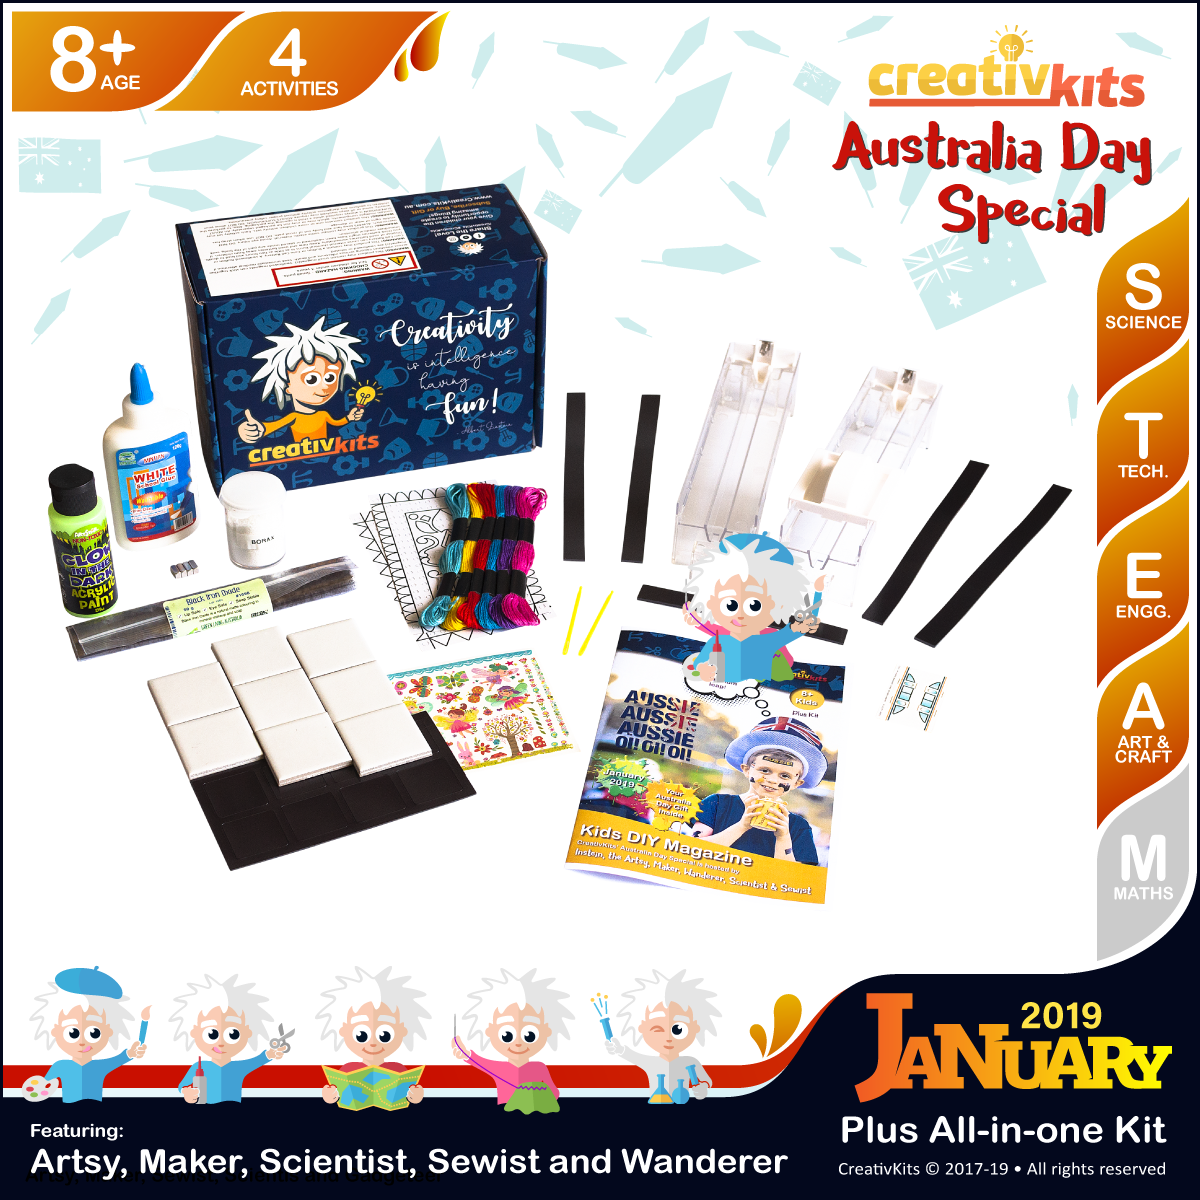 January Plus Kit • Age 8 plus • Fridge Magnets, Carpet Stitching, GID Magnetic Slime & Maglev Train